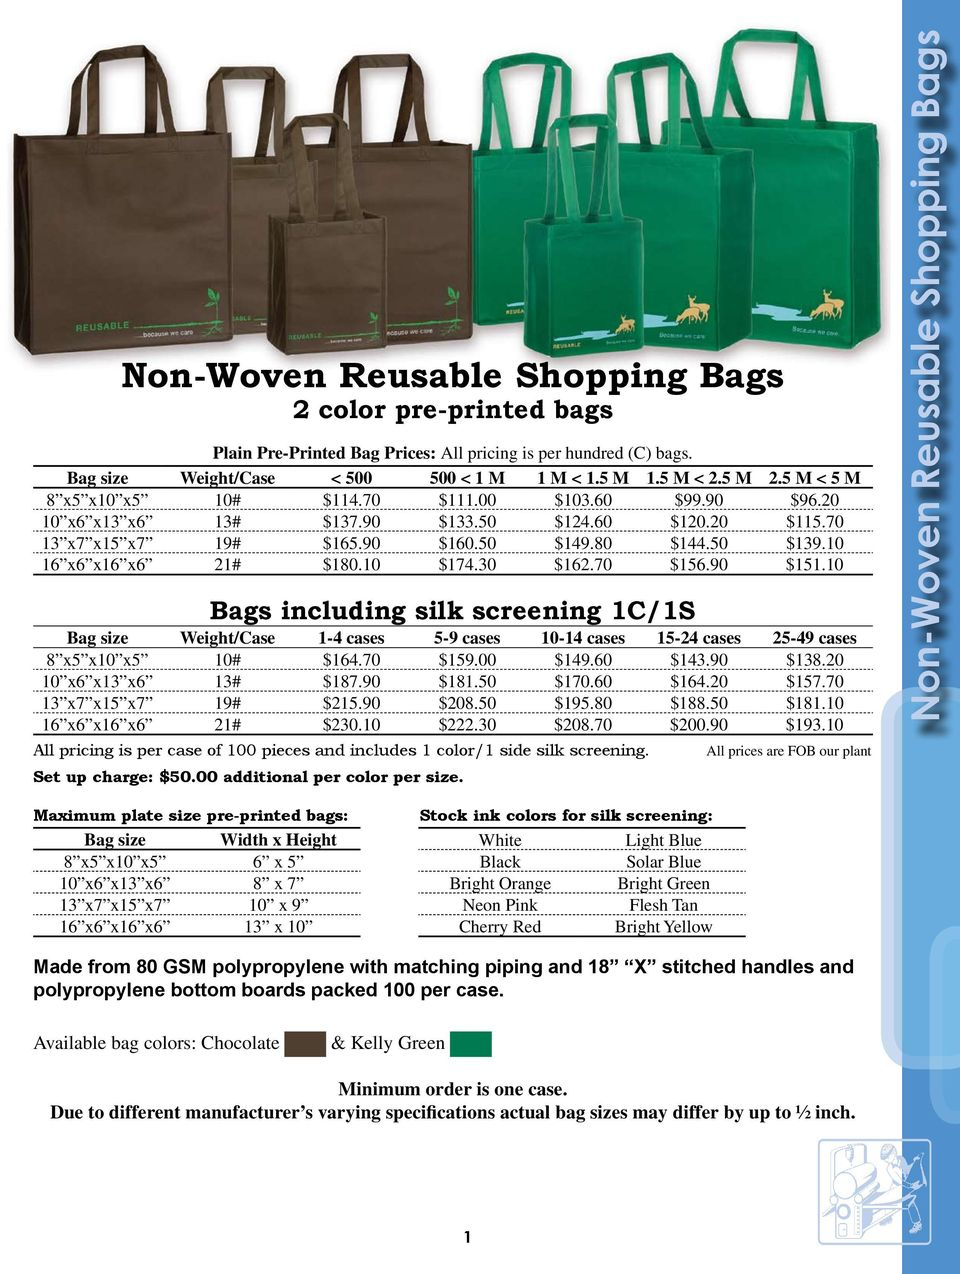 10 $174.30 $162.70 $156.90 $151.10 Bags including silk screening 1C/1S Bag size Weight/Case 1-4 cases 5-9 cases 10-14 cases 15-24 cases 25-49 cases 8 x5 x10 x5 10# $164.70 $159.00 $149.60 $143.